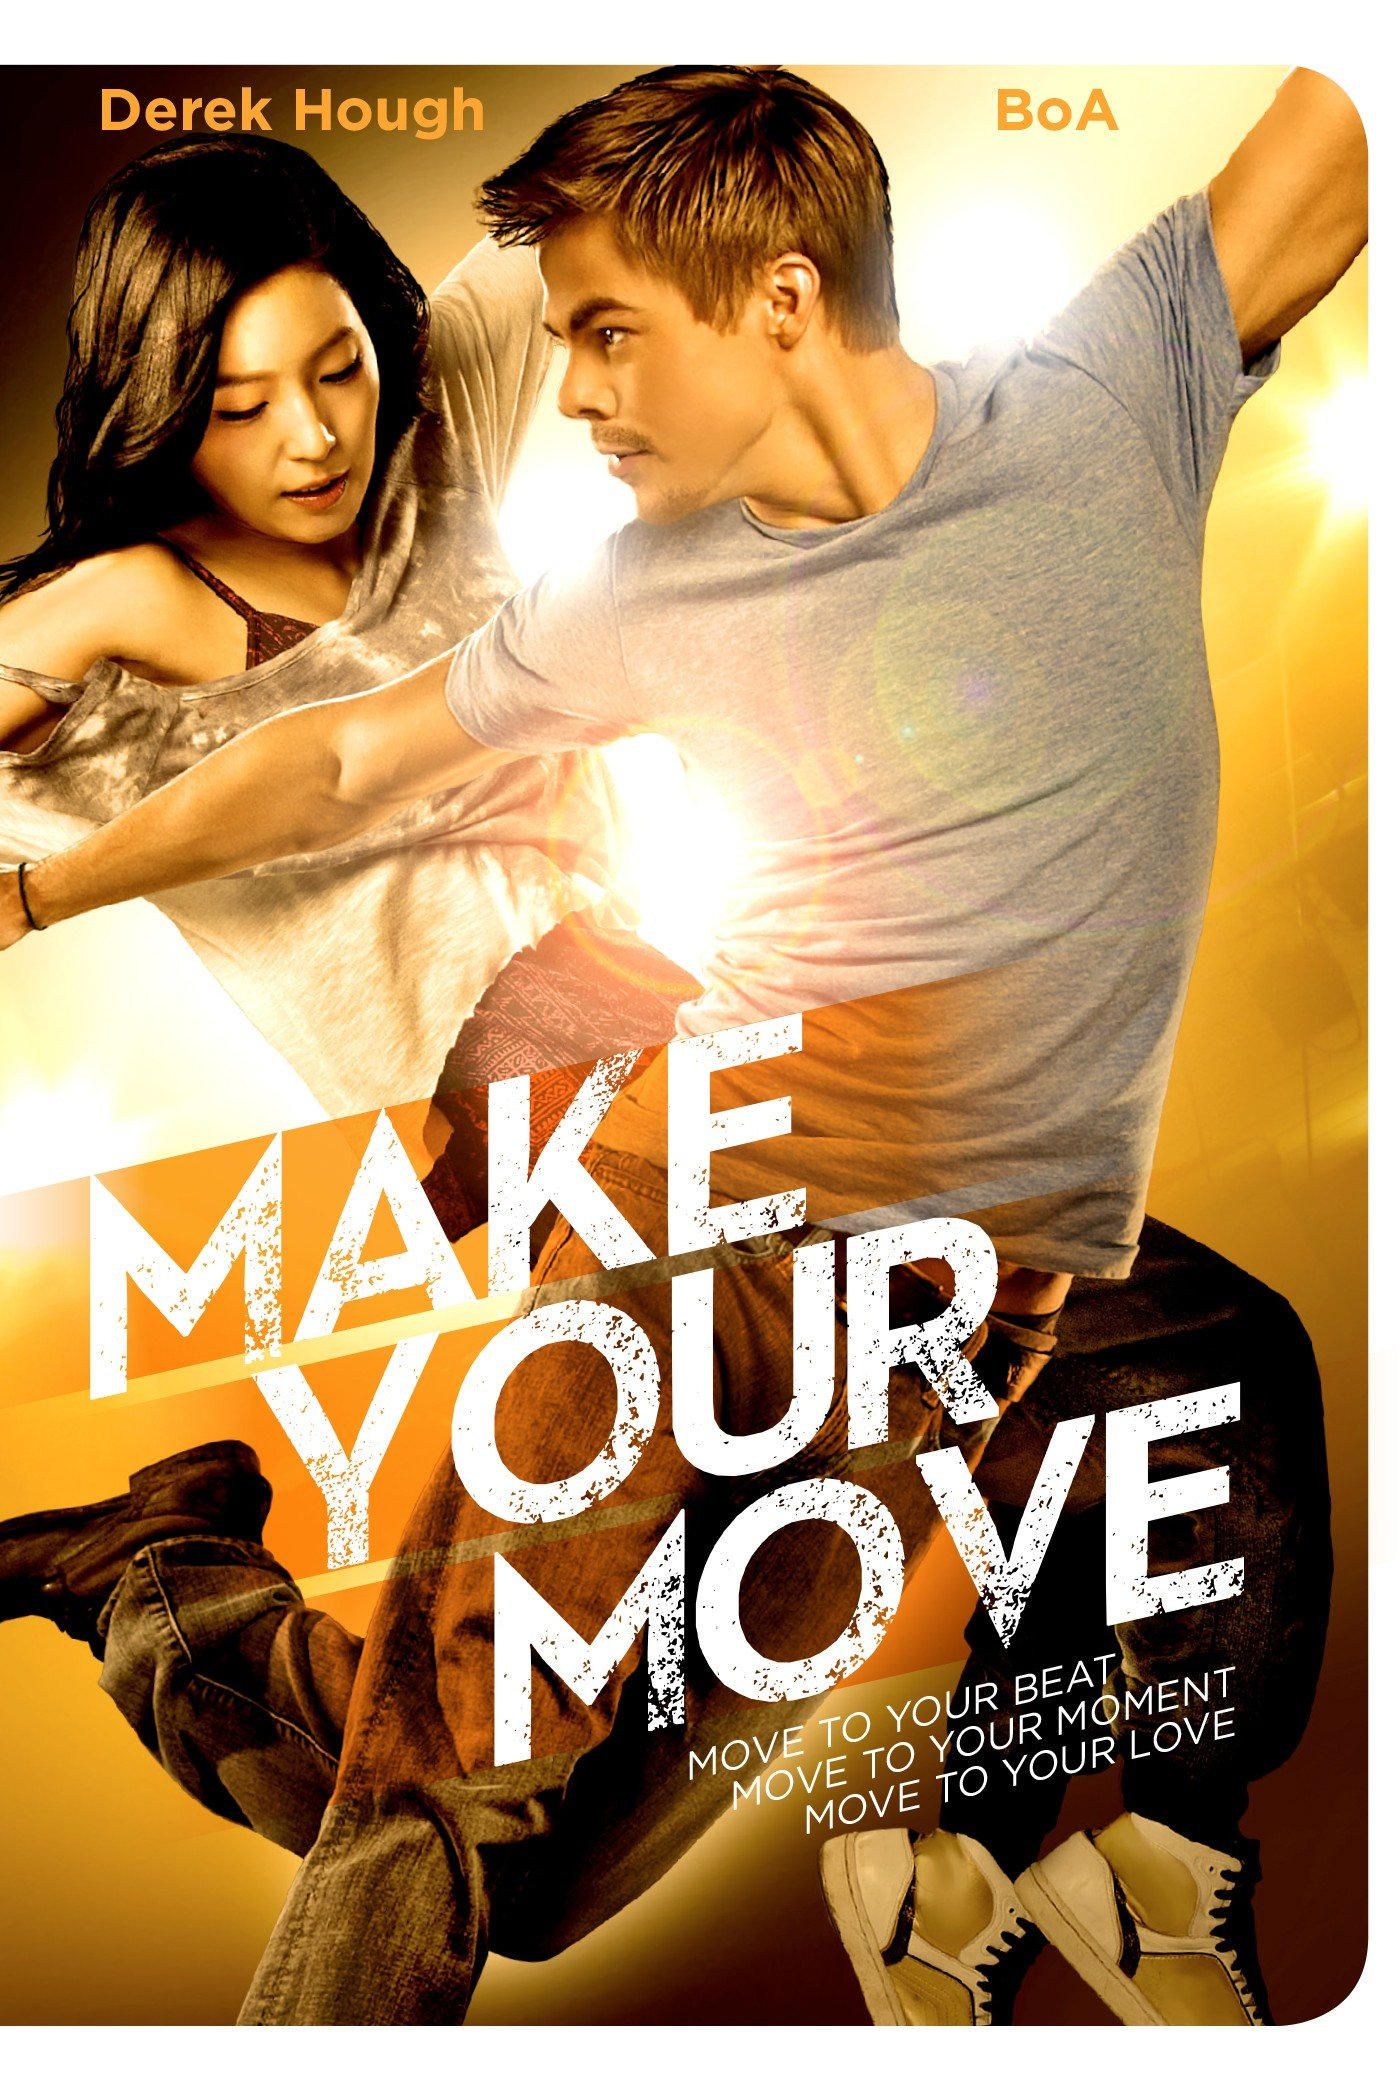 MAKE YOUR MOVE | Movieguide | Movie Reviews for Christians: www.movieguide.org/reviews/make-your-move.html